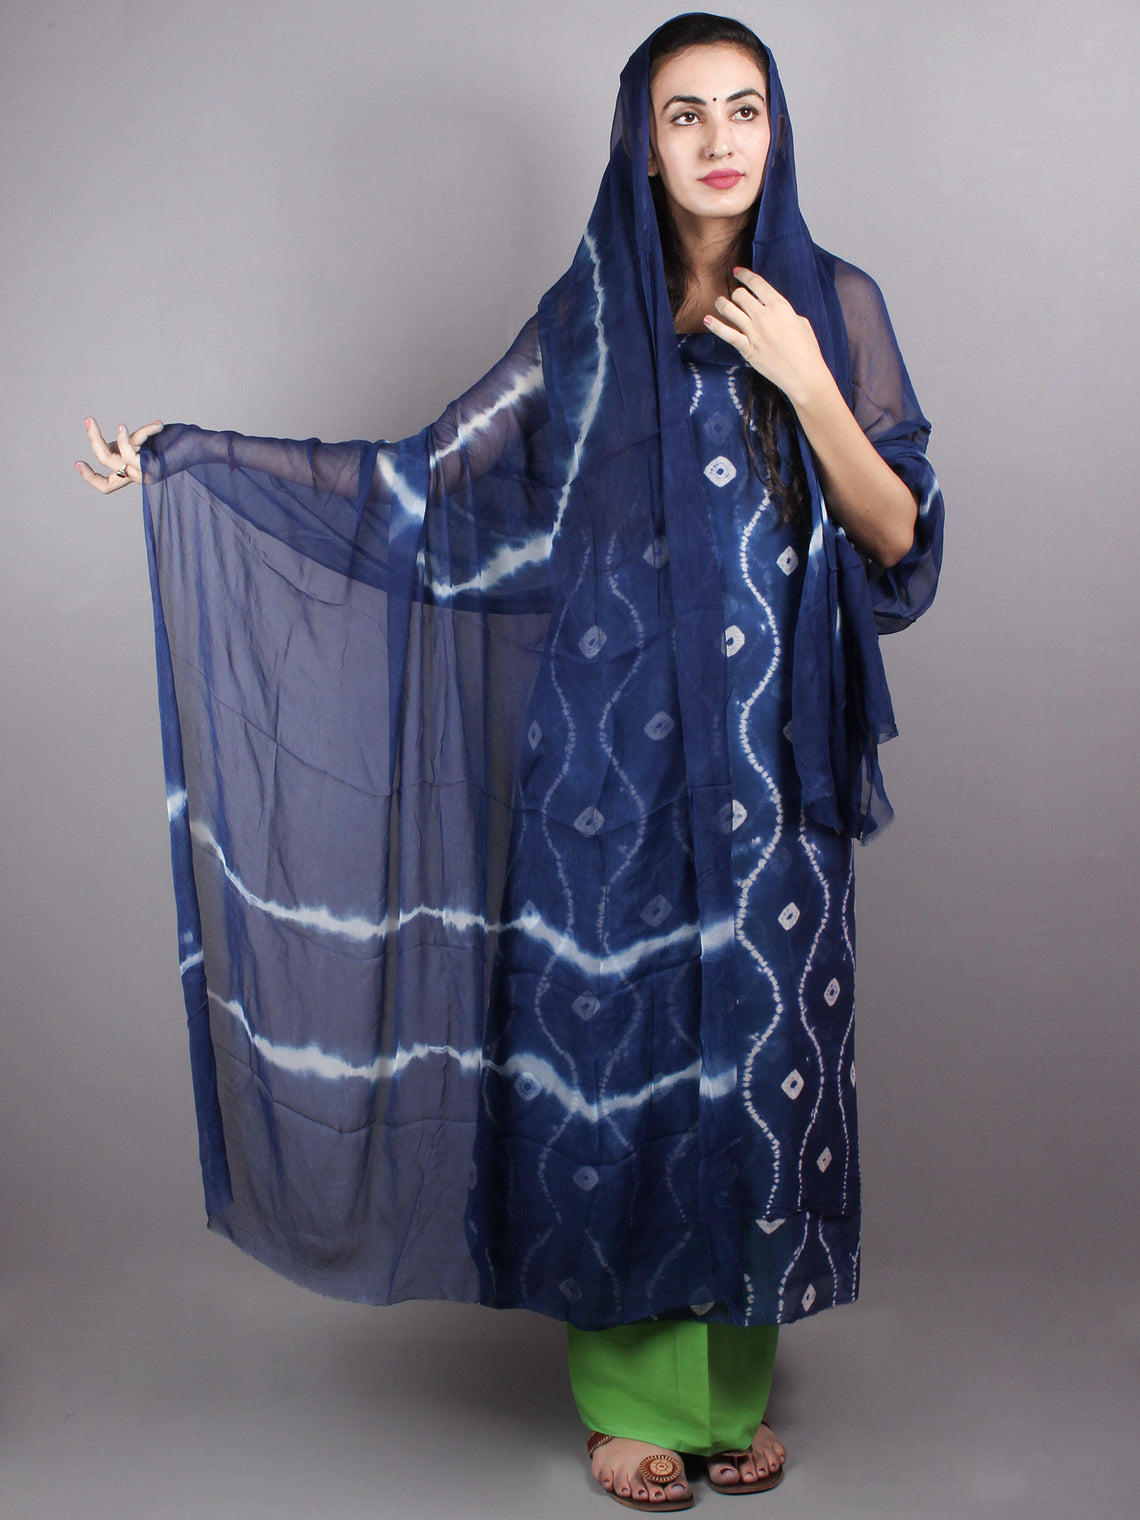 Indigo White Hand Block Printed Chanderi Unstitched Kurta & Shiffon Dupatta With Mint Green Cotton Salwar - S1628020